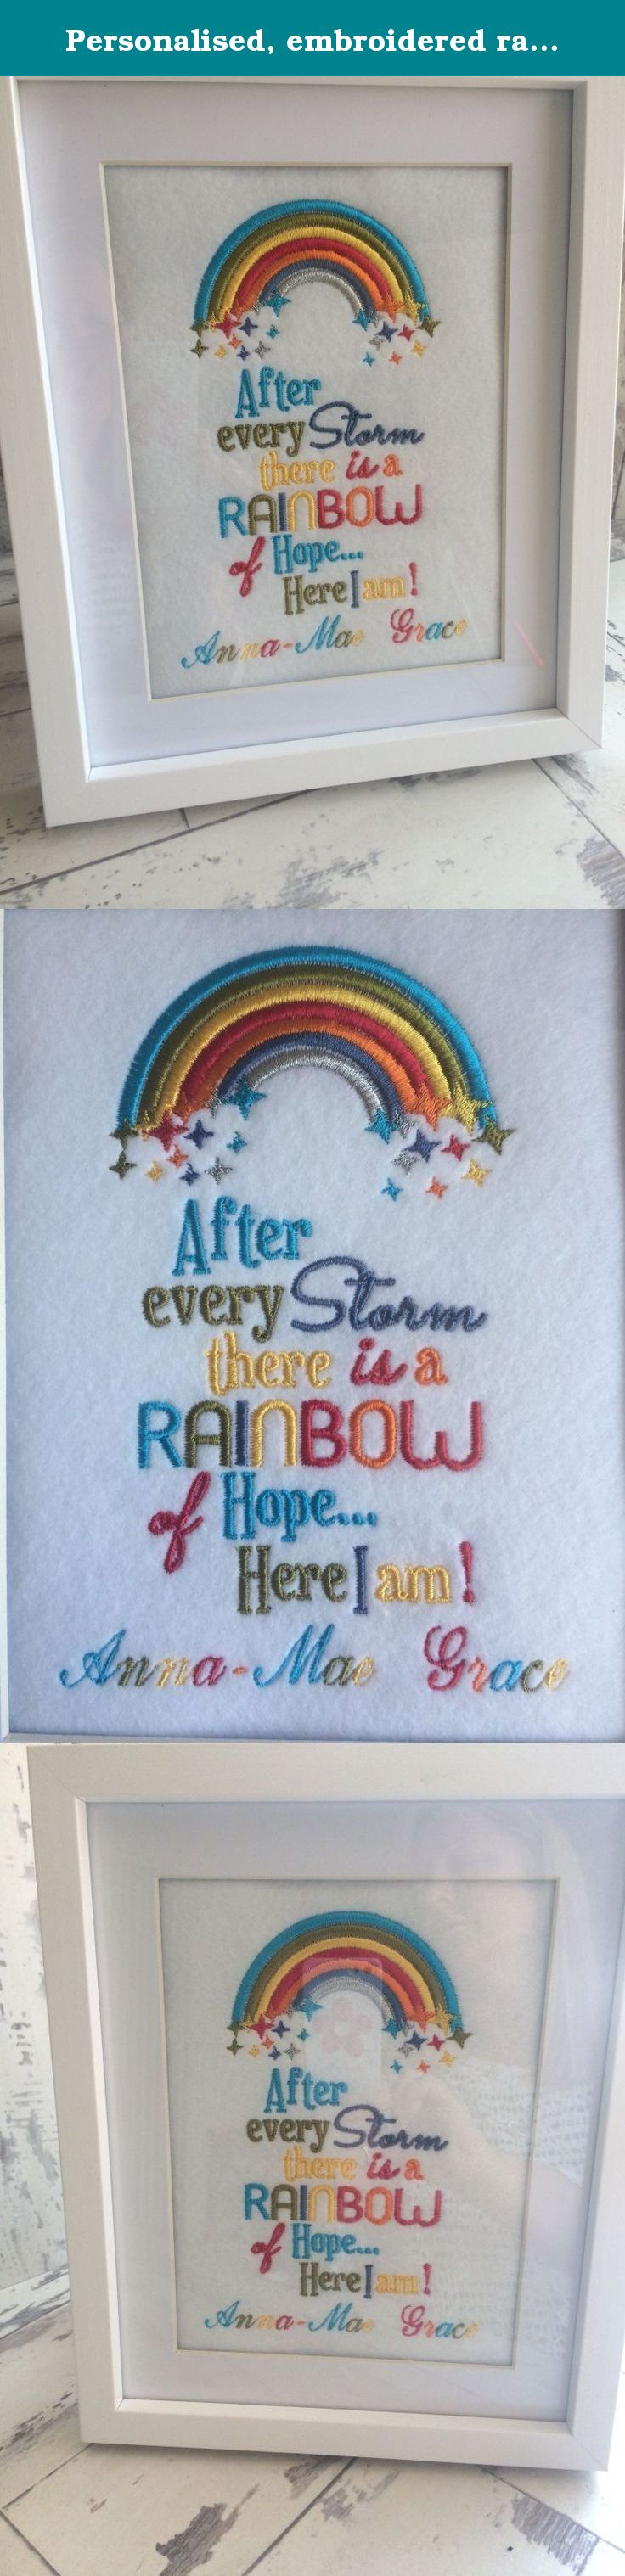 Personalised embroidered rainbow baby picture frame Newborn